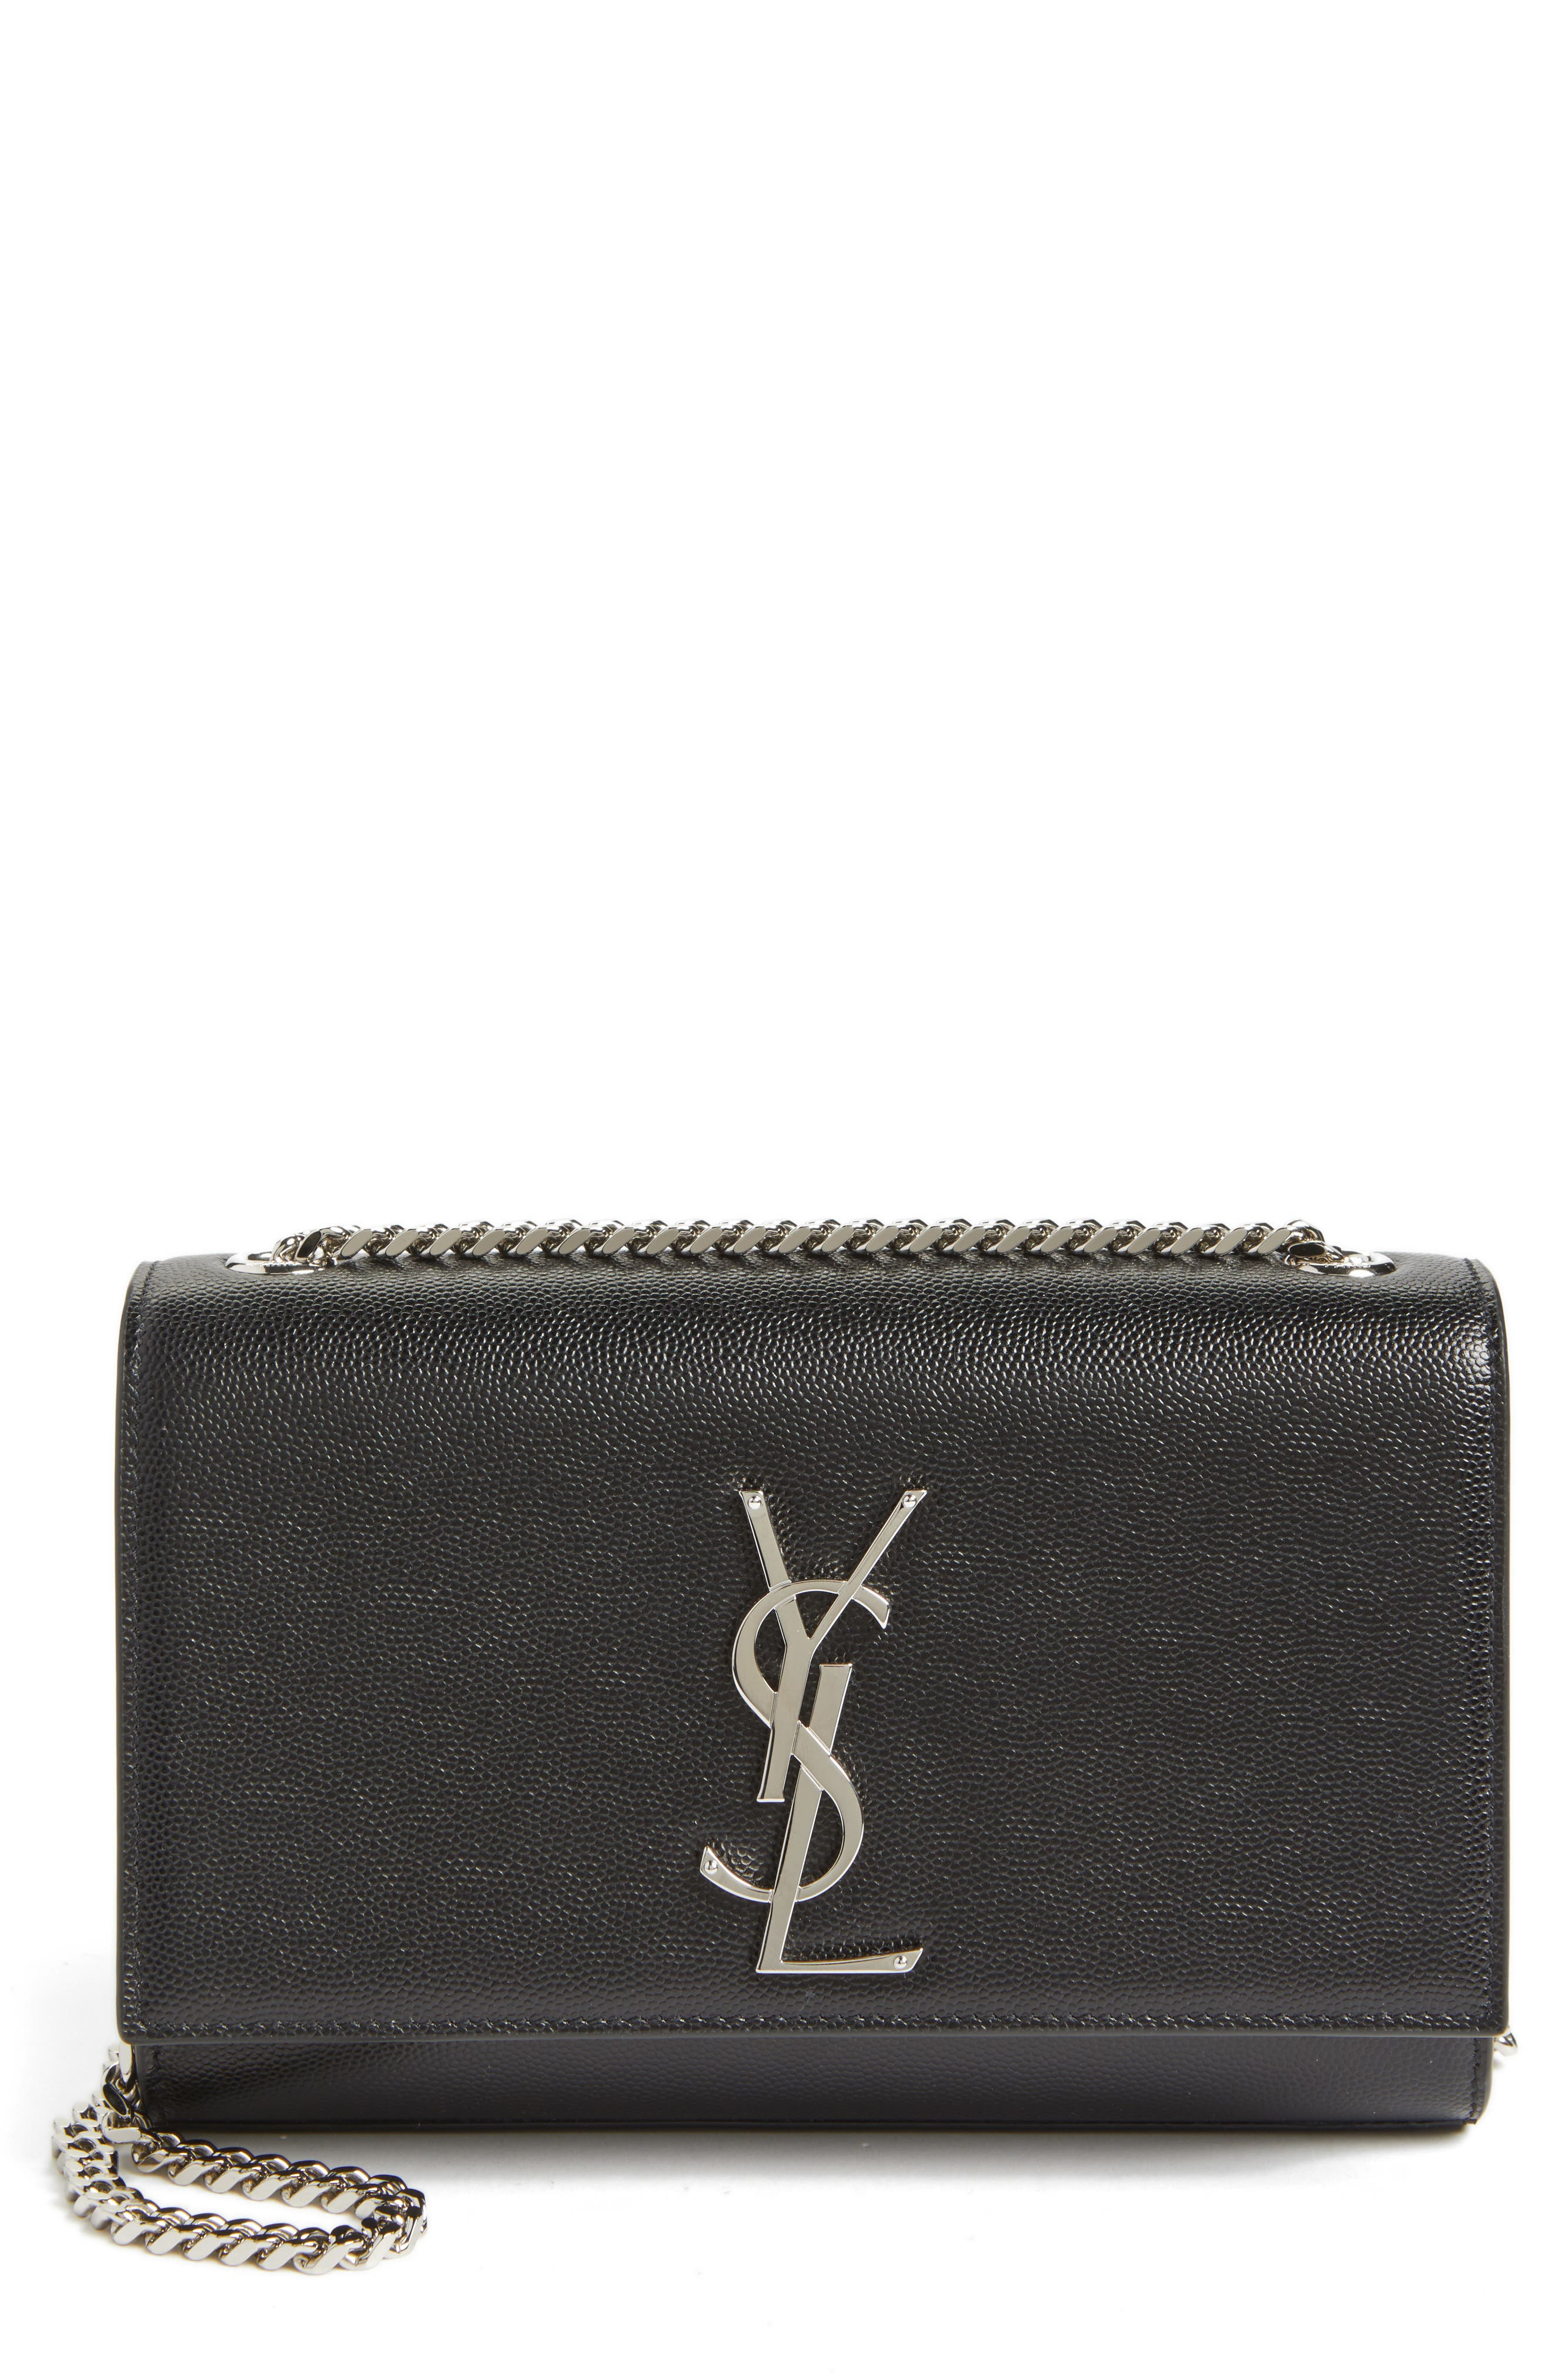 SAINT LAURENT Small Kate Grained Leather Crossbody Bag, Main, color, NOIR